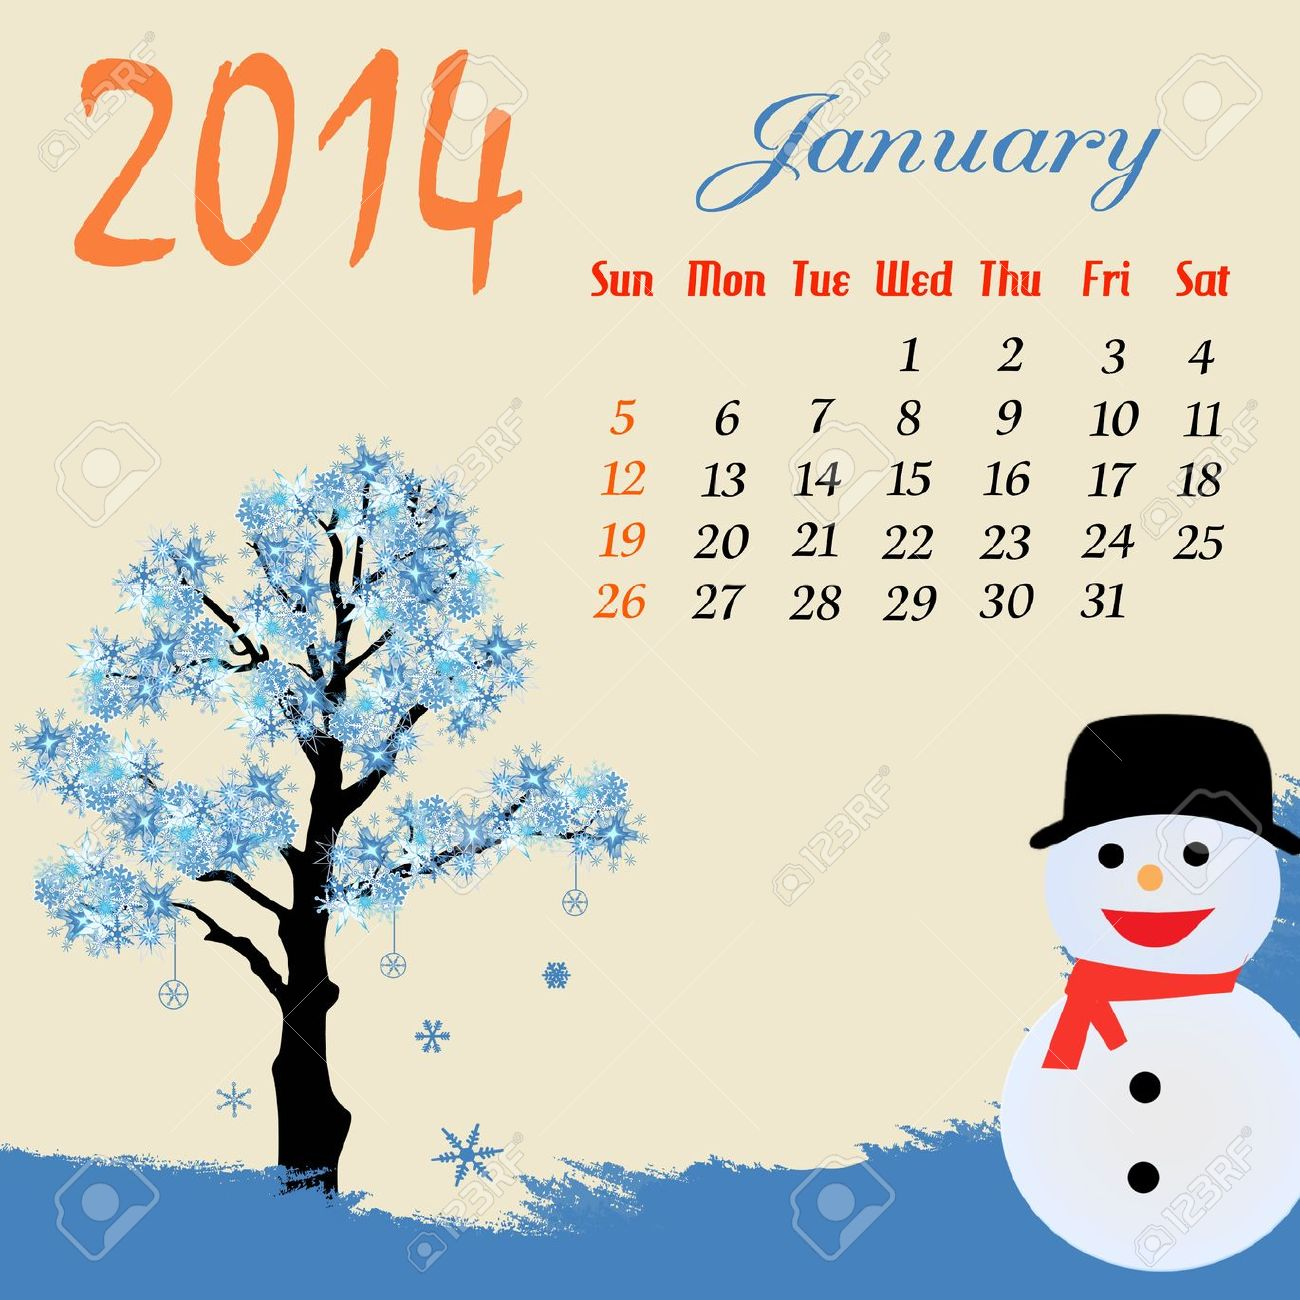 January snowman calendar clipart banner black and white library Calendar For 2014 January With Winter Tree And Snowman Royalty ... banner black and white library